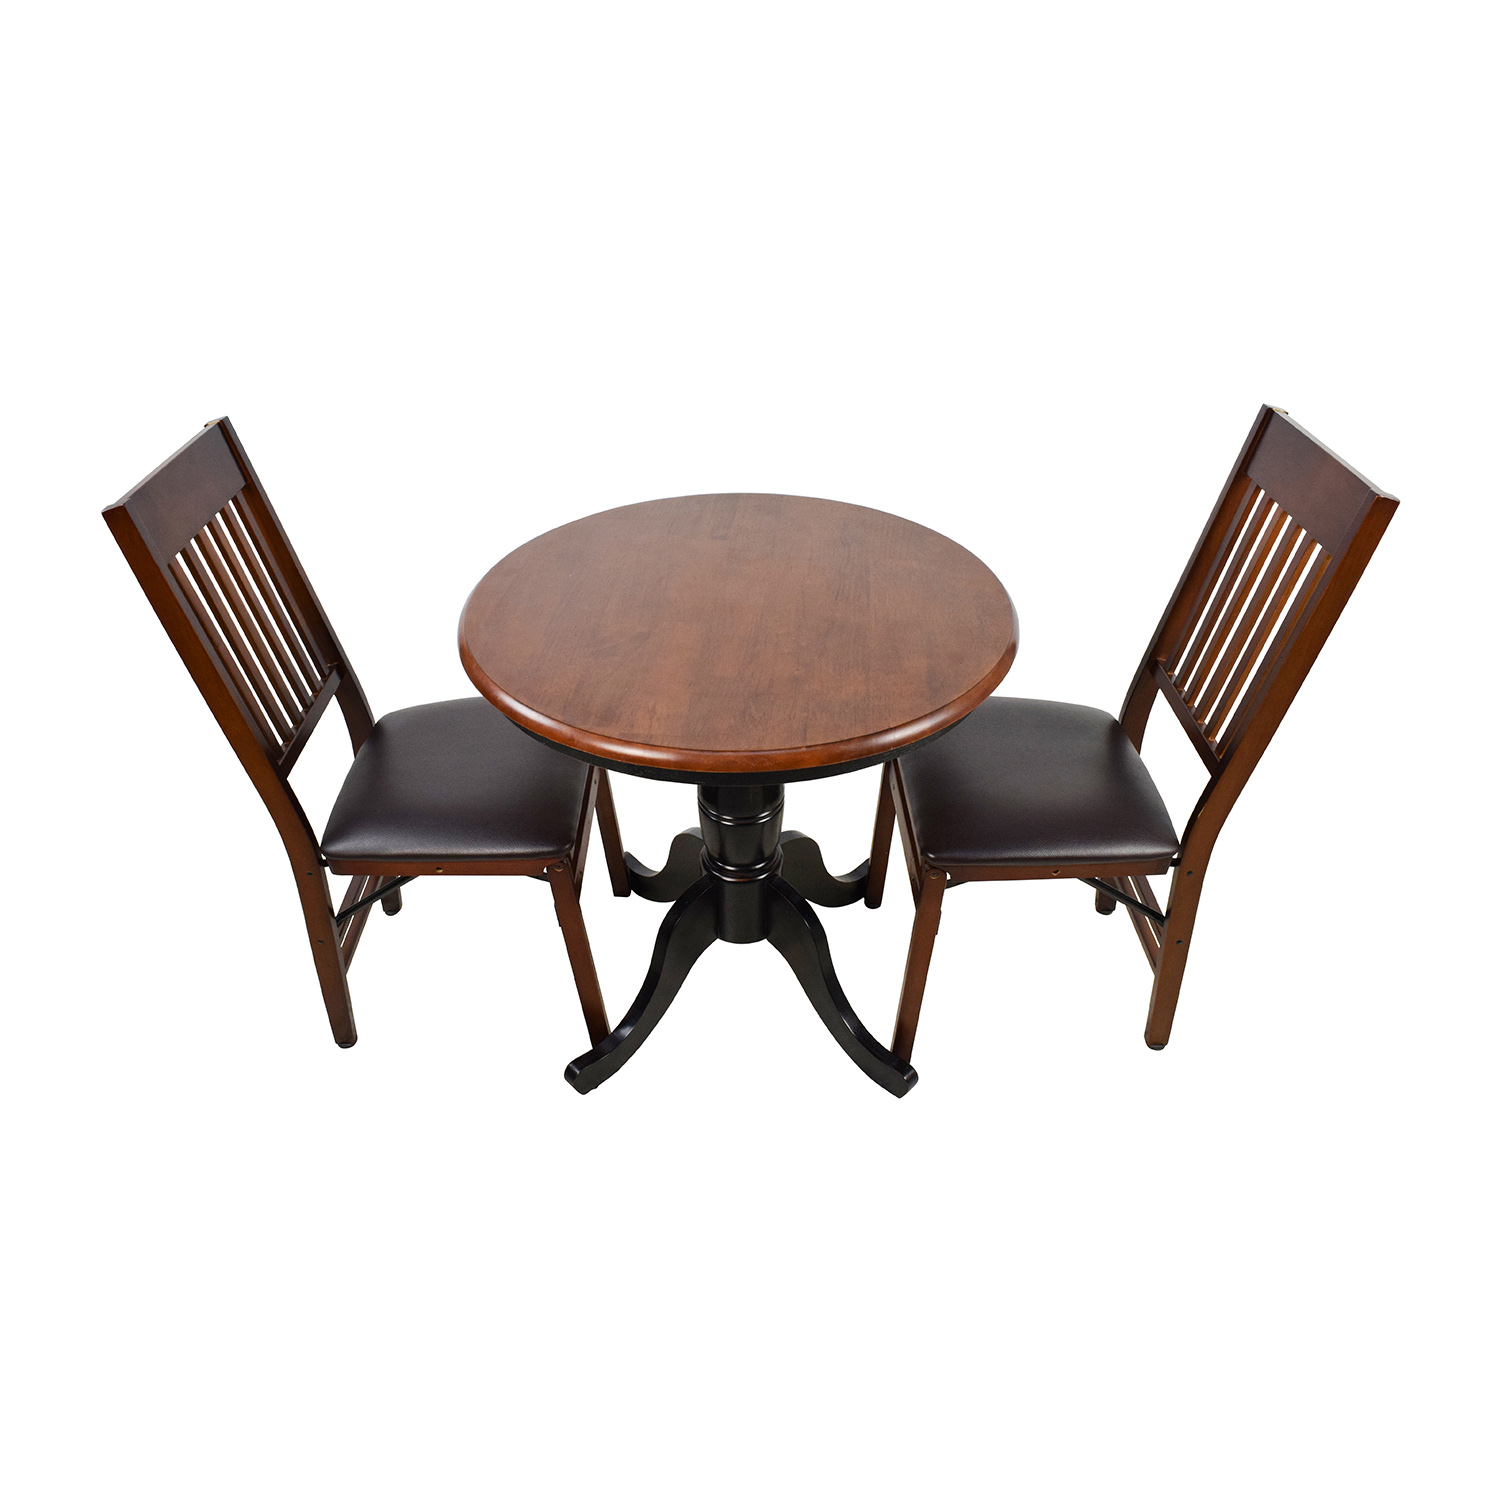 buy Pier 1 Keeran Bistro Rubbed Black Round Table Pier 1 Dining Sets